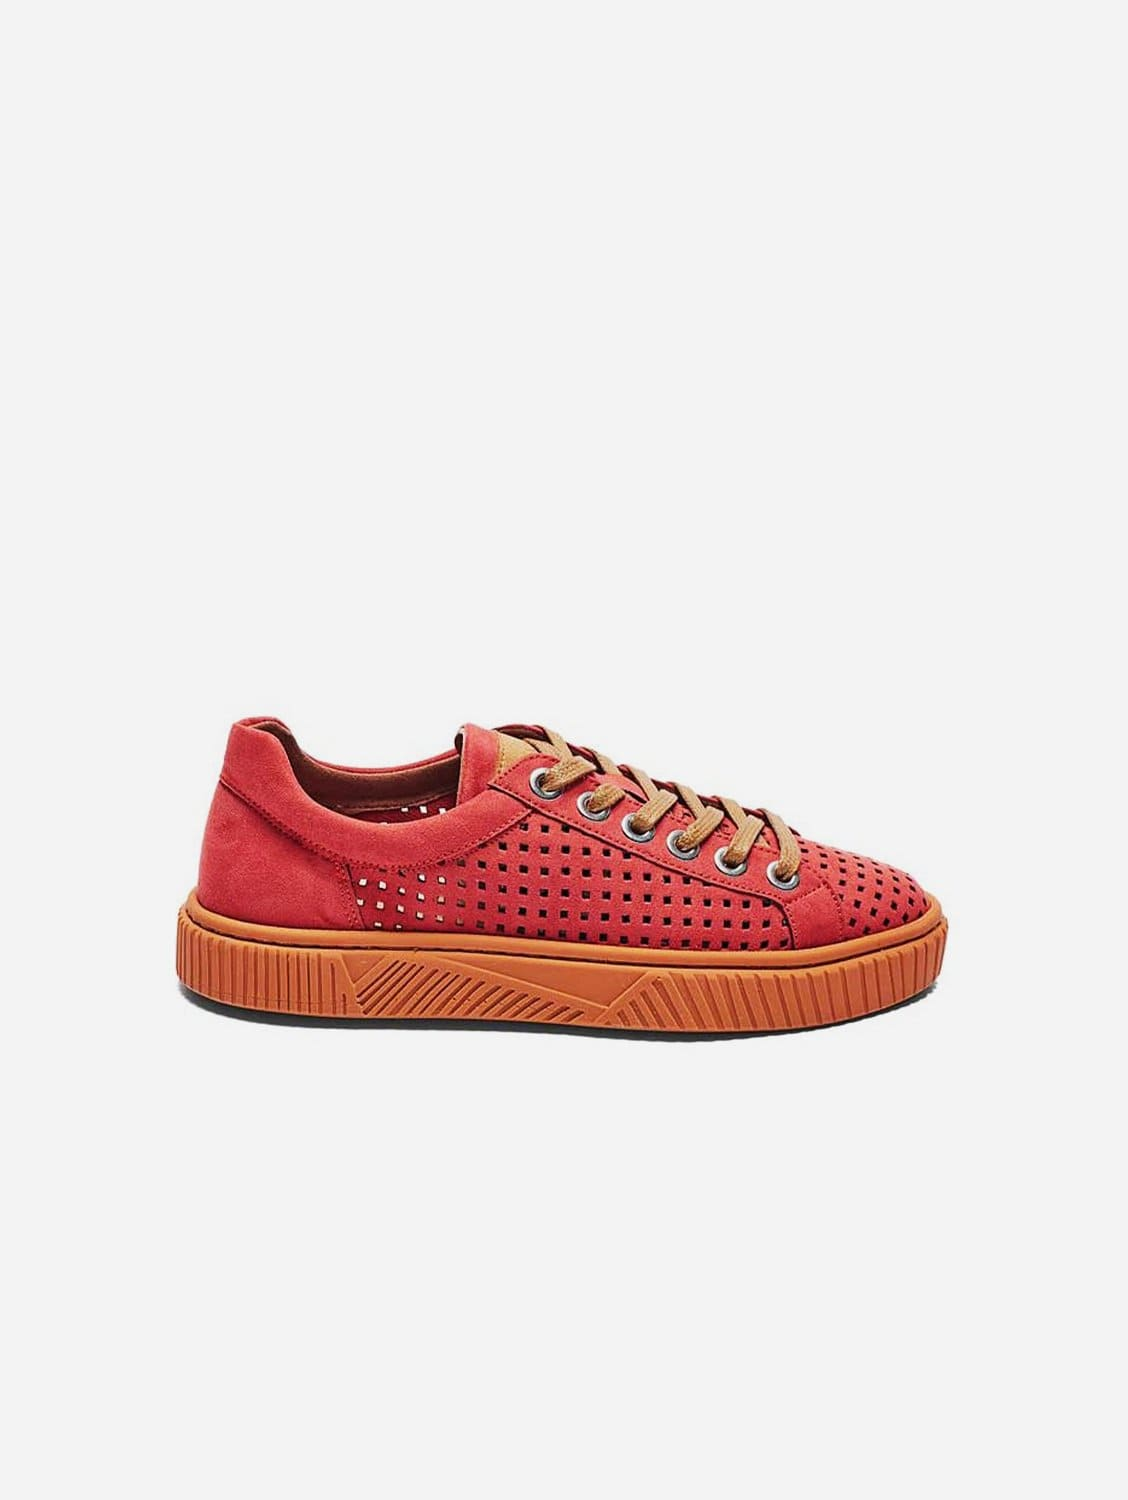 Jolie Recycled Polyester Vegan Suede Trainer | Watermelon